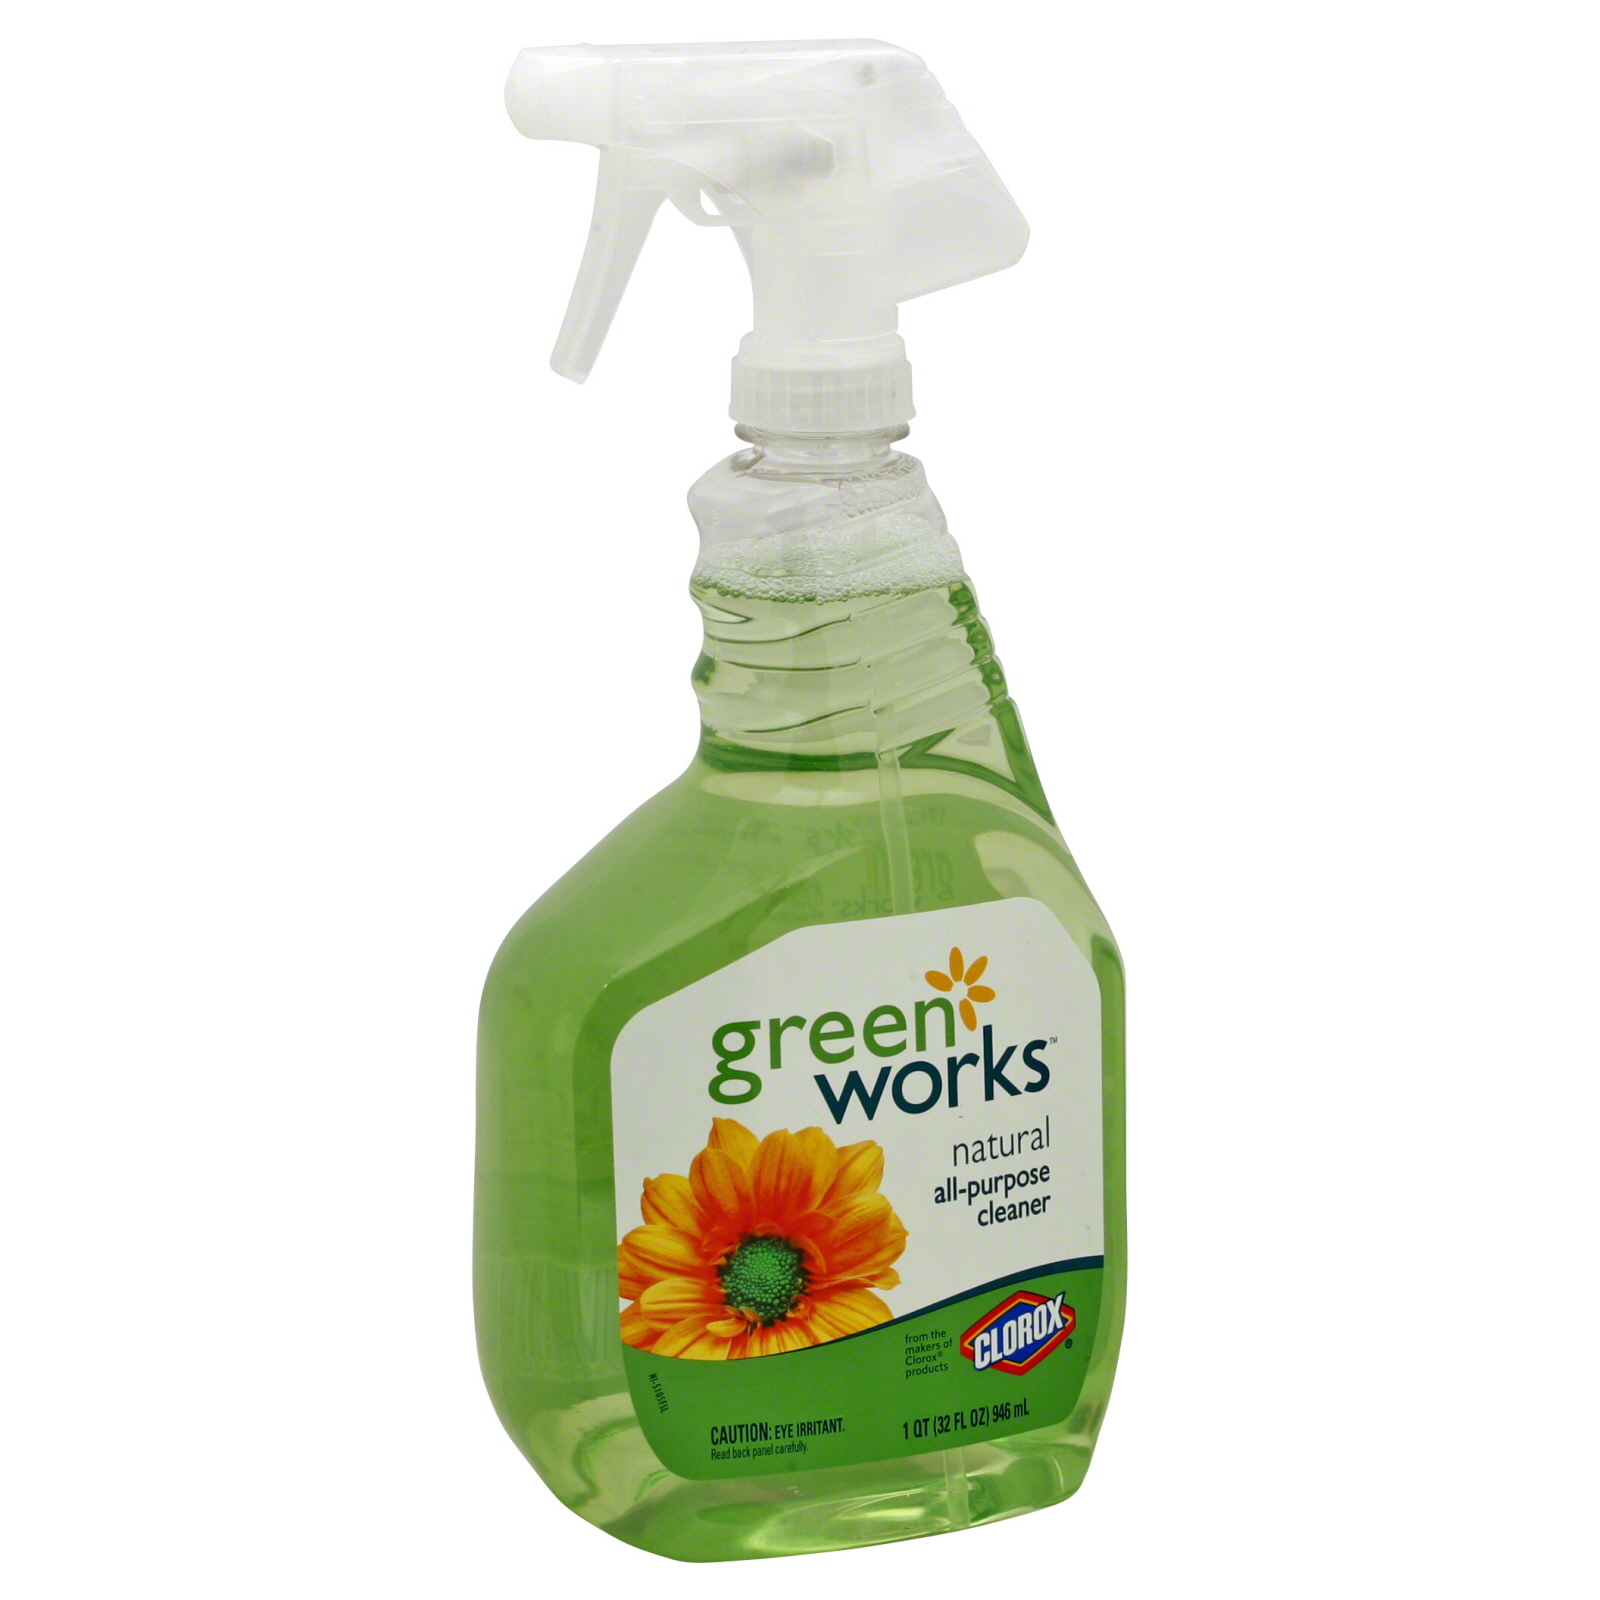 Most Effective Natural Cleaning Products